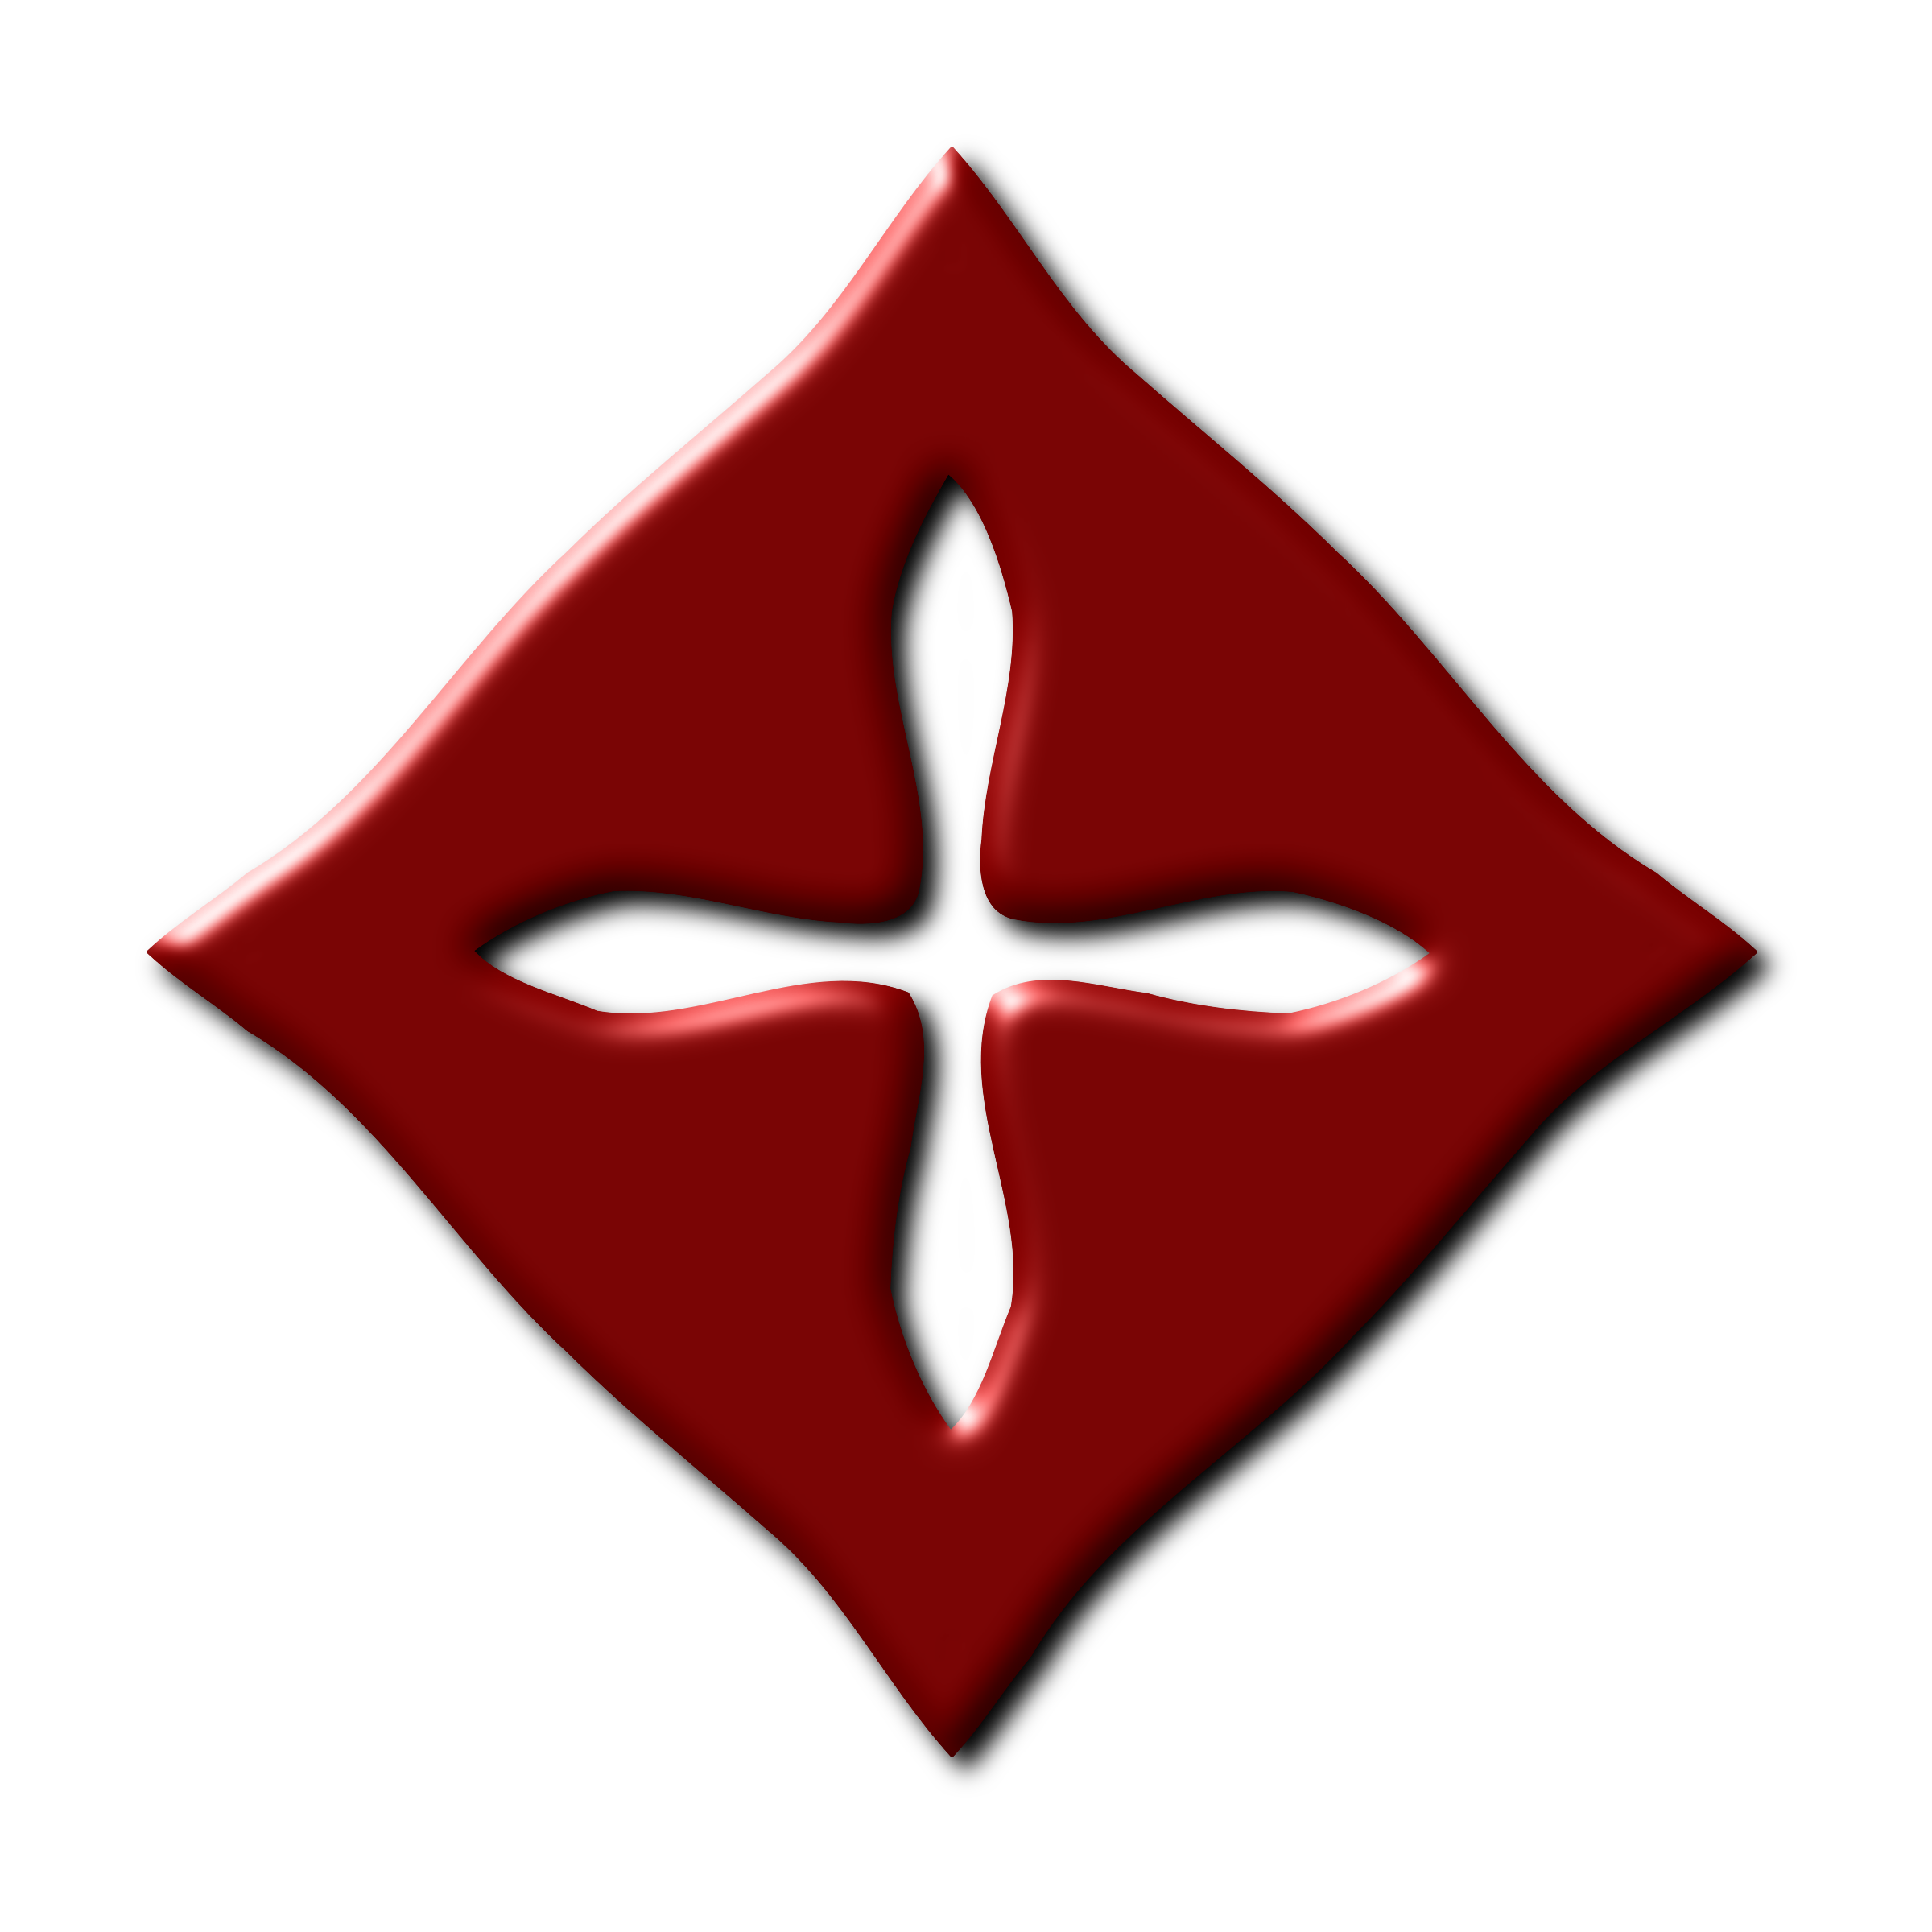 Cross symbol 2 by Firkin